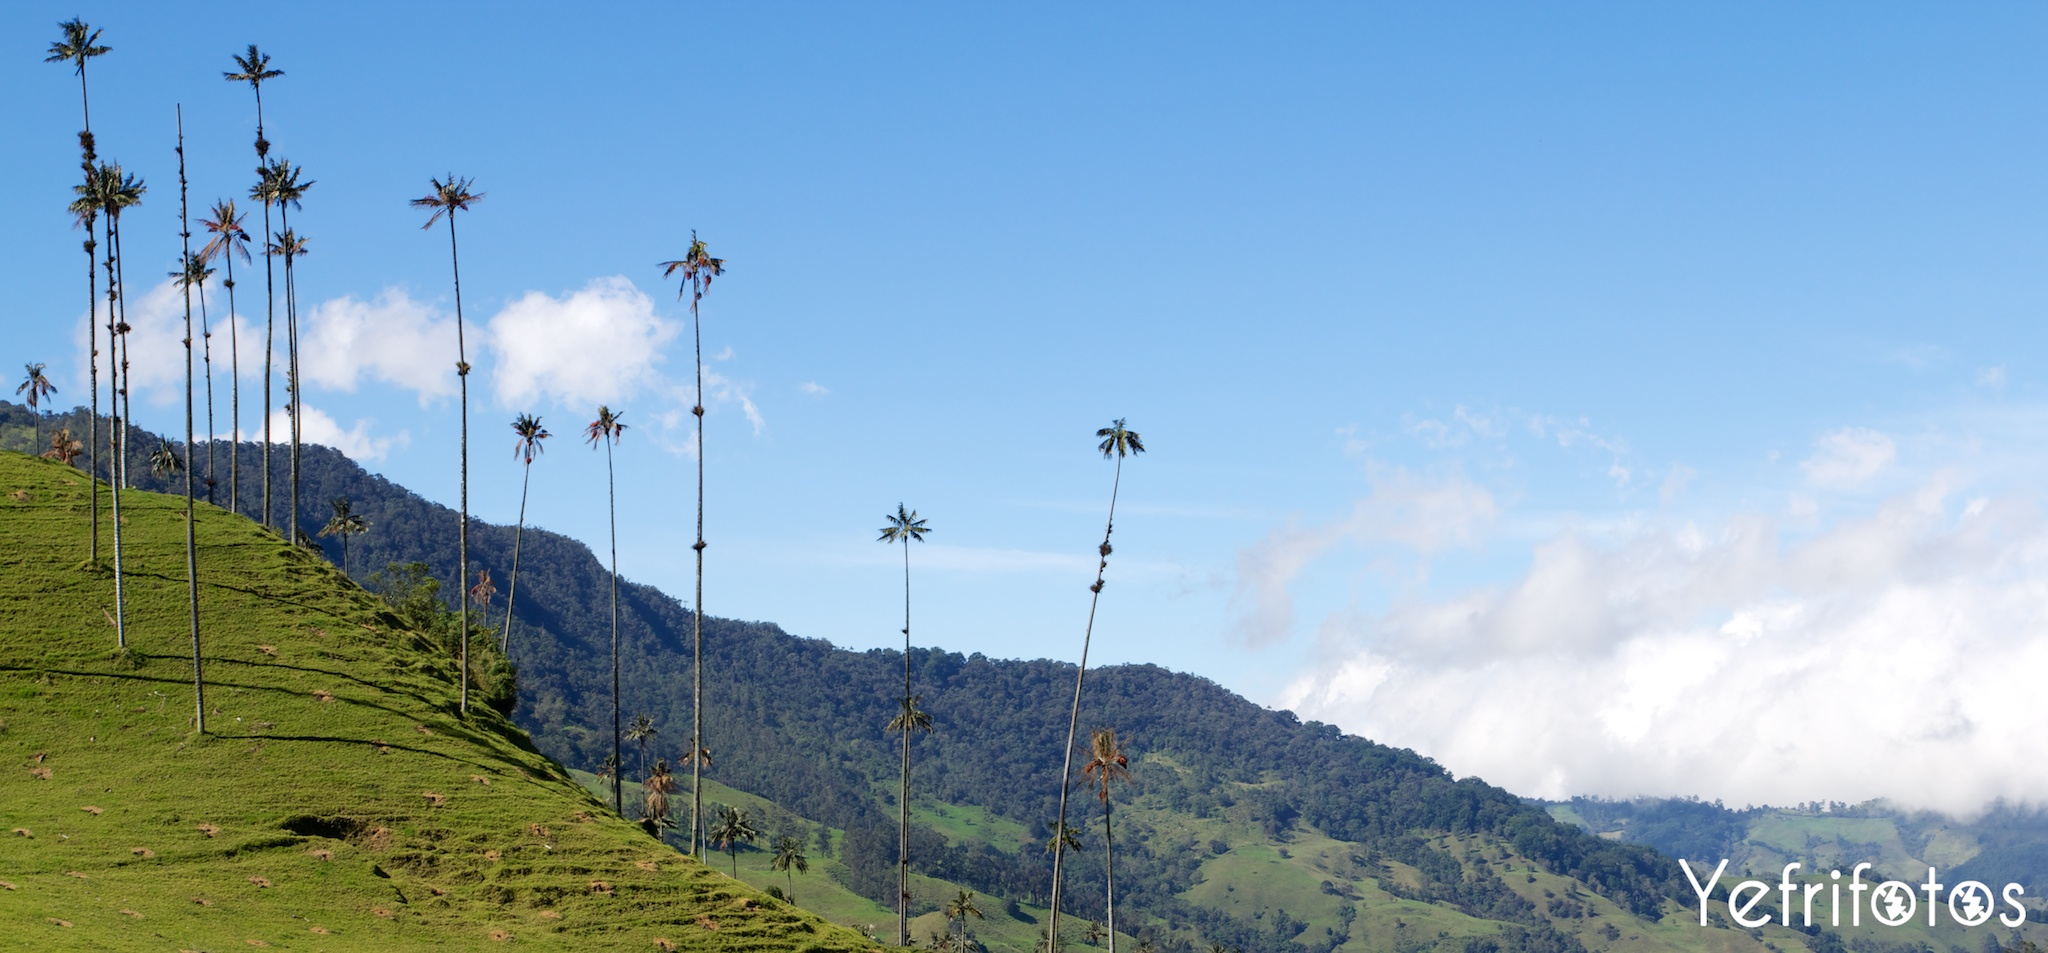 Colombie - Valle del Cocora Panorama